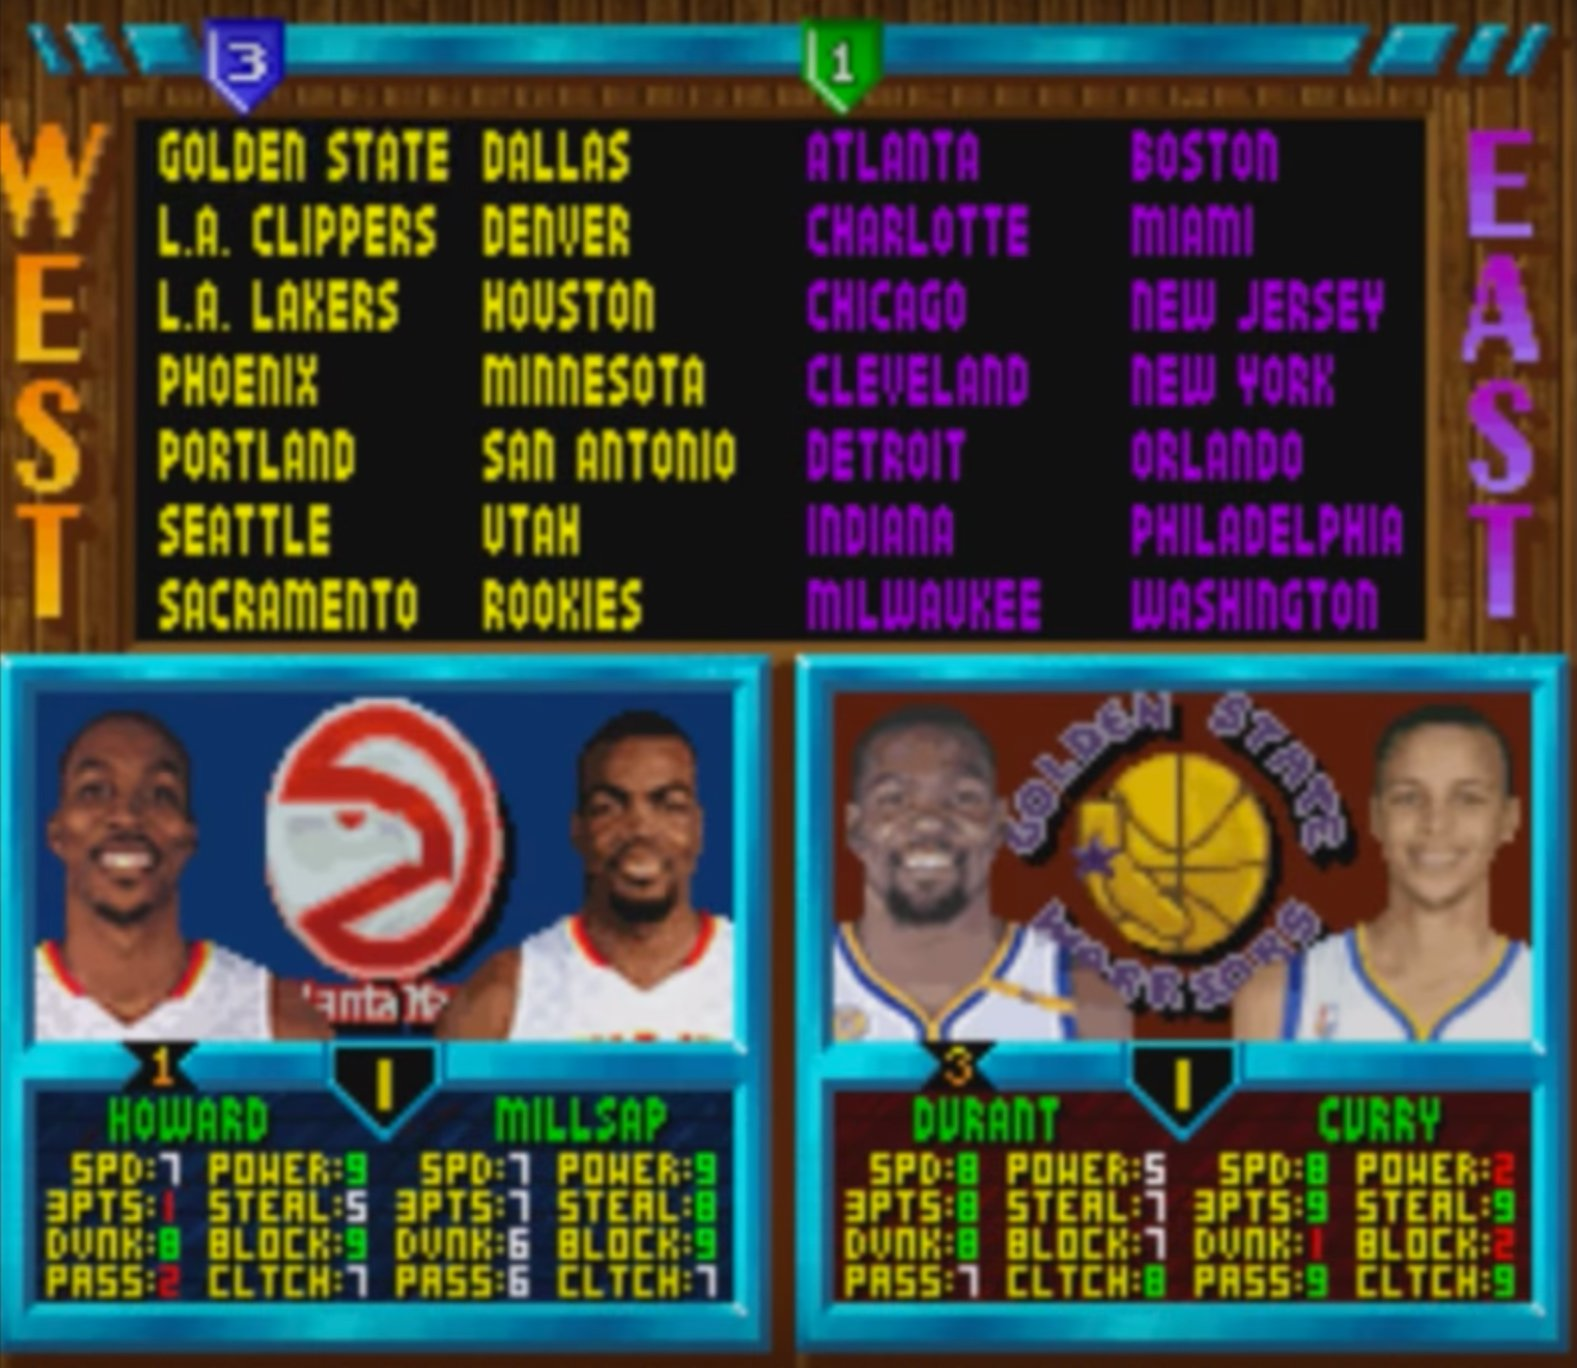 The past plus the present equals the future of wasting your time playing basketball video games on your computer. (Screencap via Hogs with a Blog)